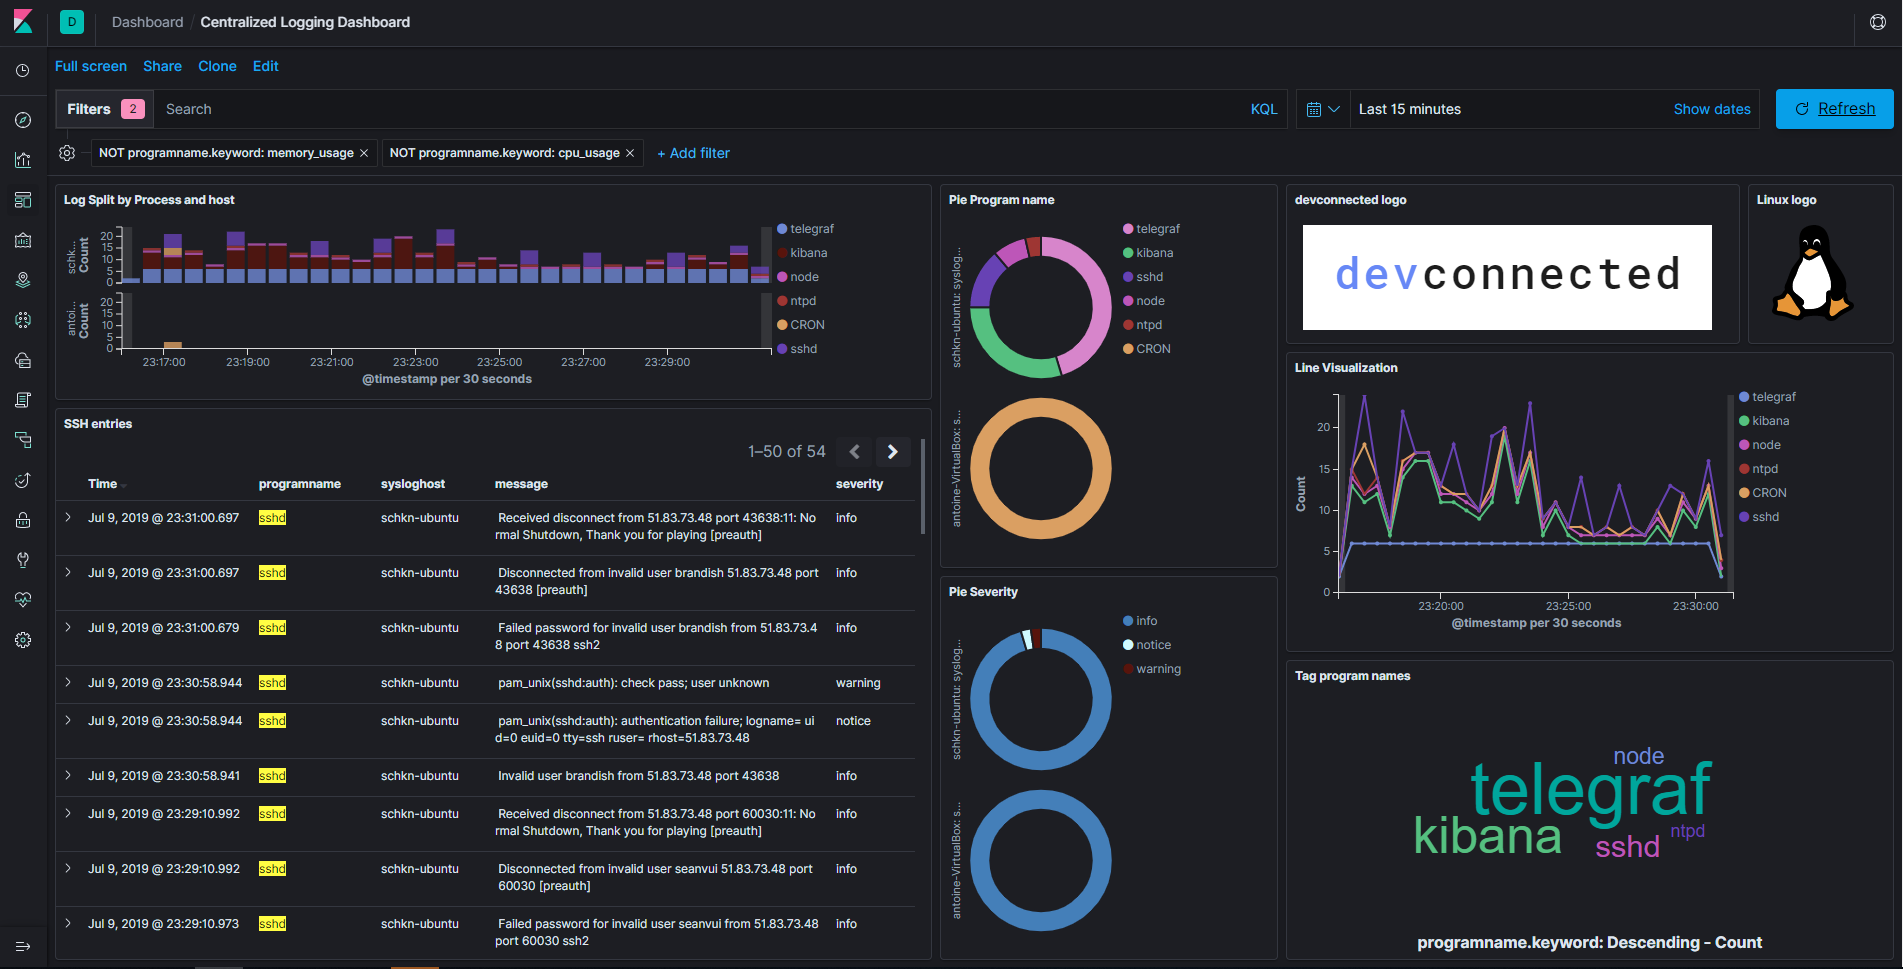 Monitoring Linux Logs with Kibana and Rsyslog - devconnected